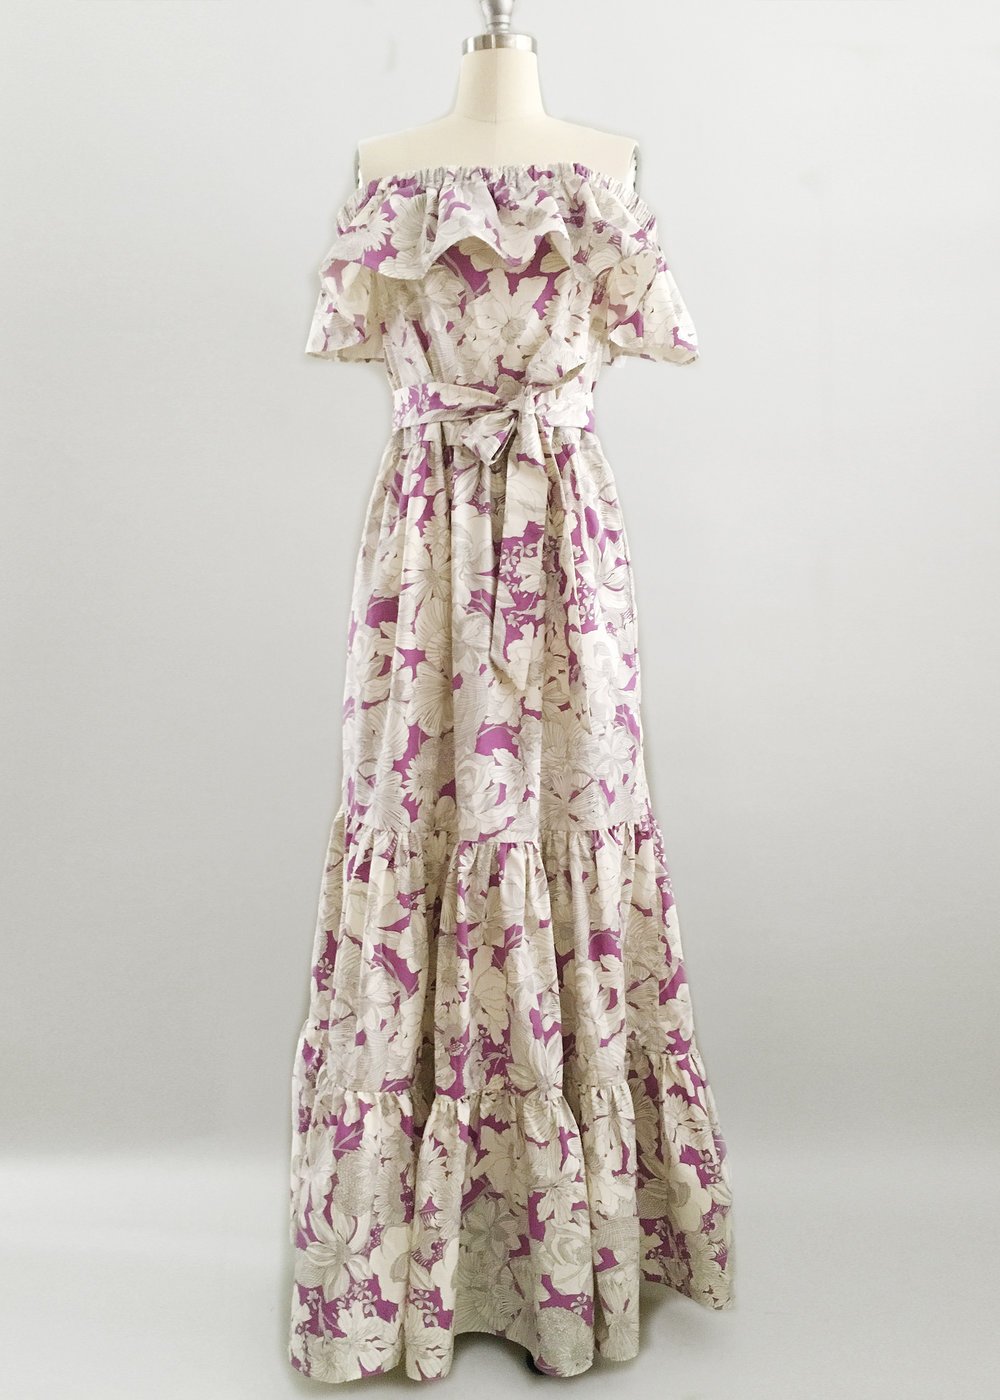 Liberty Print Cotton Floral Custom Tiered Maxi Dress.jpg